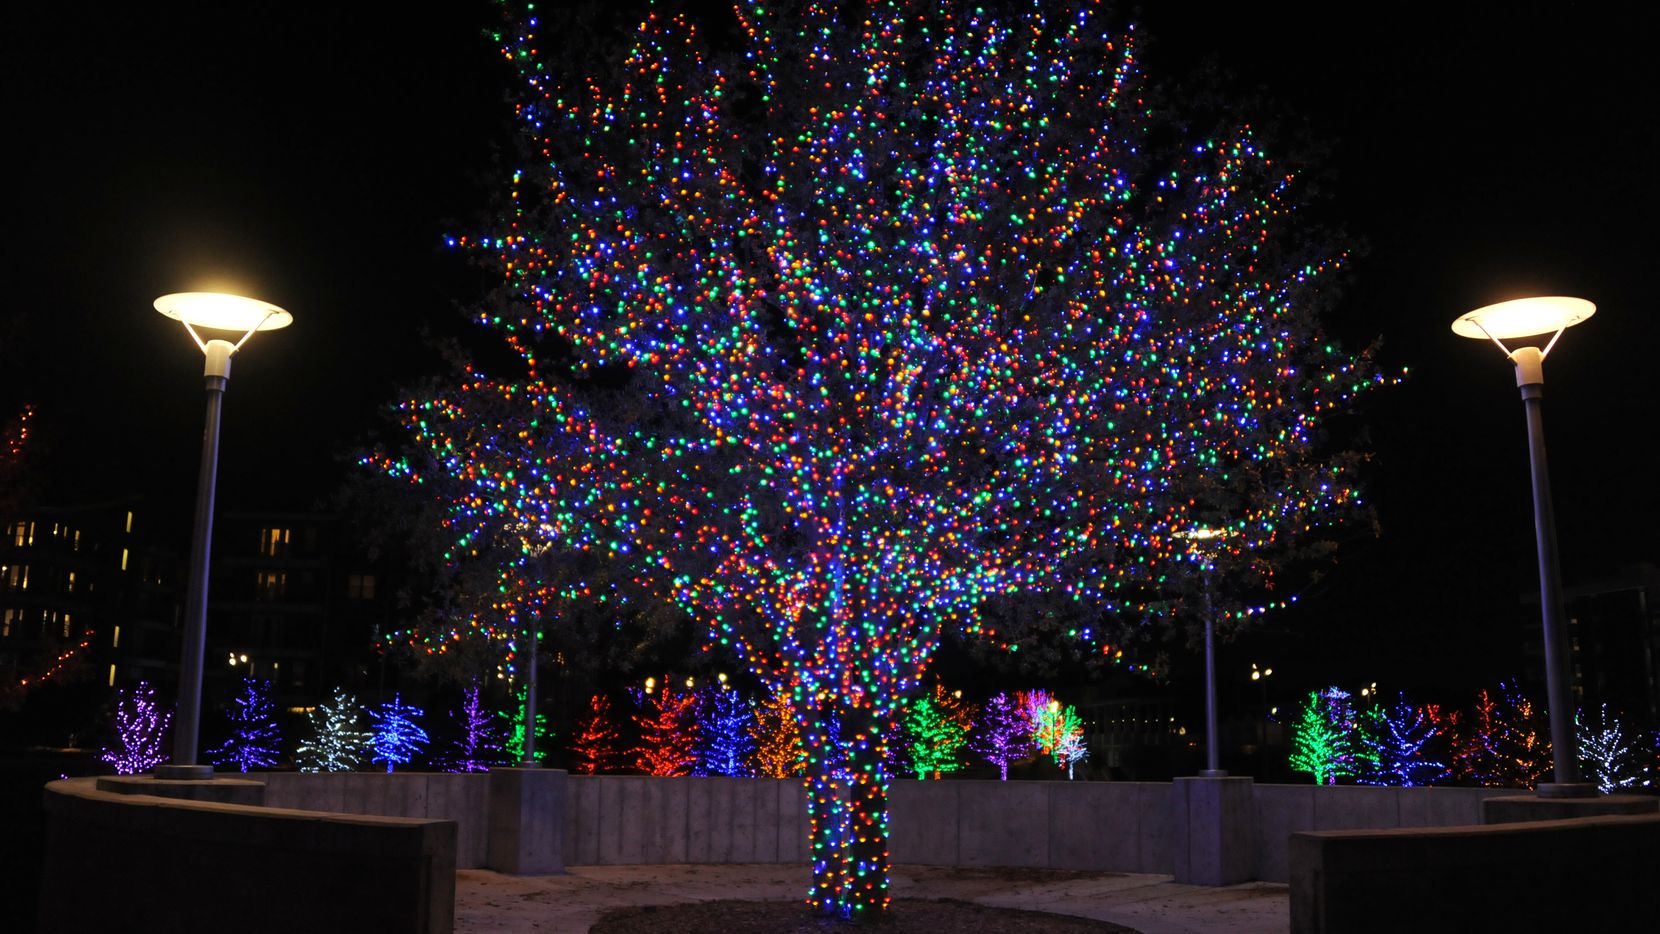 Vitruvian Park celebrates the holidays with a free festive light display.